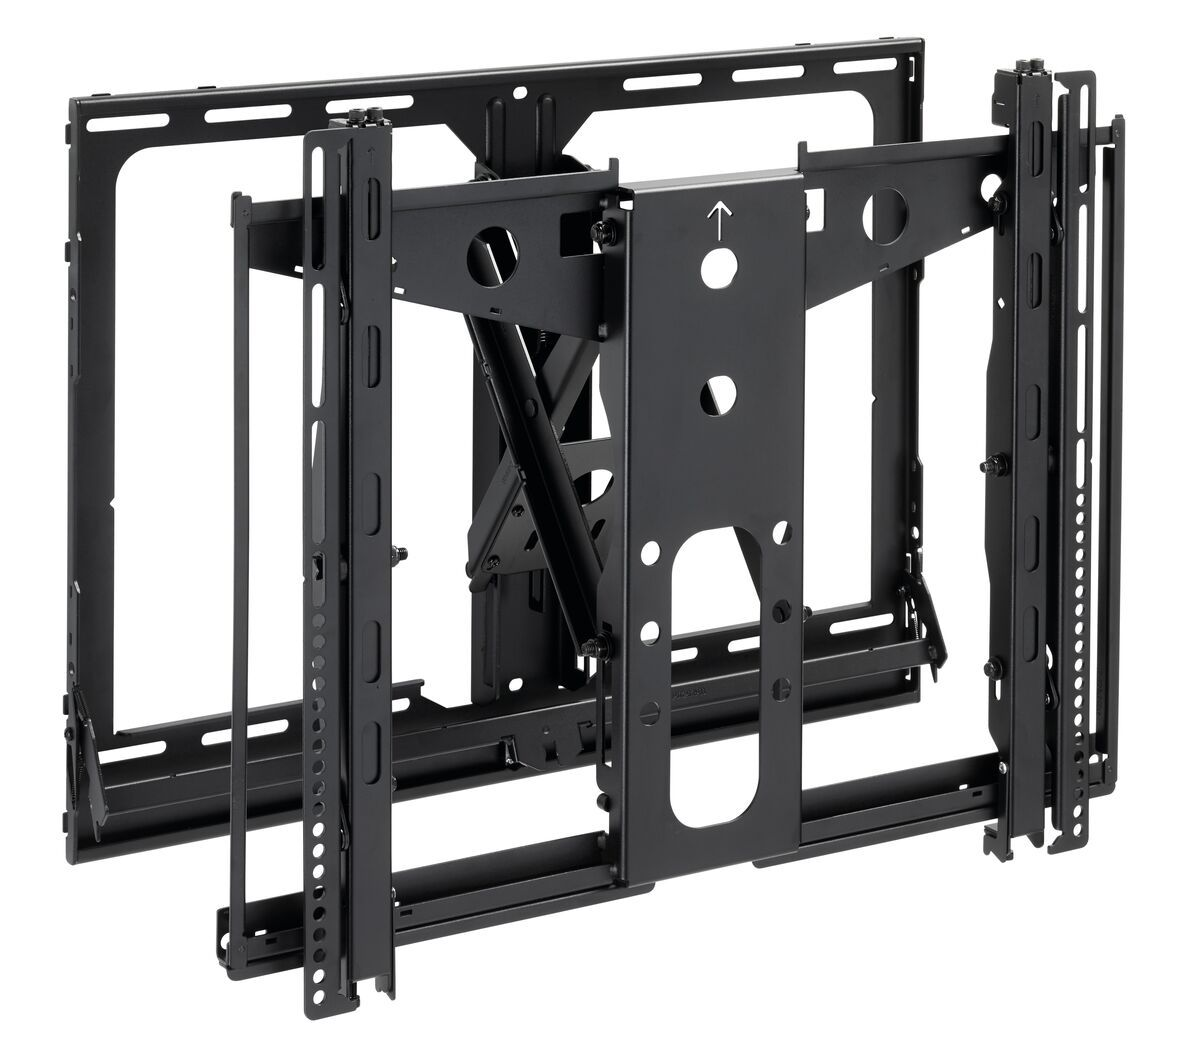 Vogel's PFW 6880 Video wall pop-out wall mount - Product